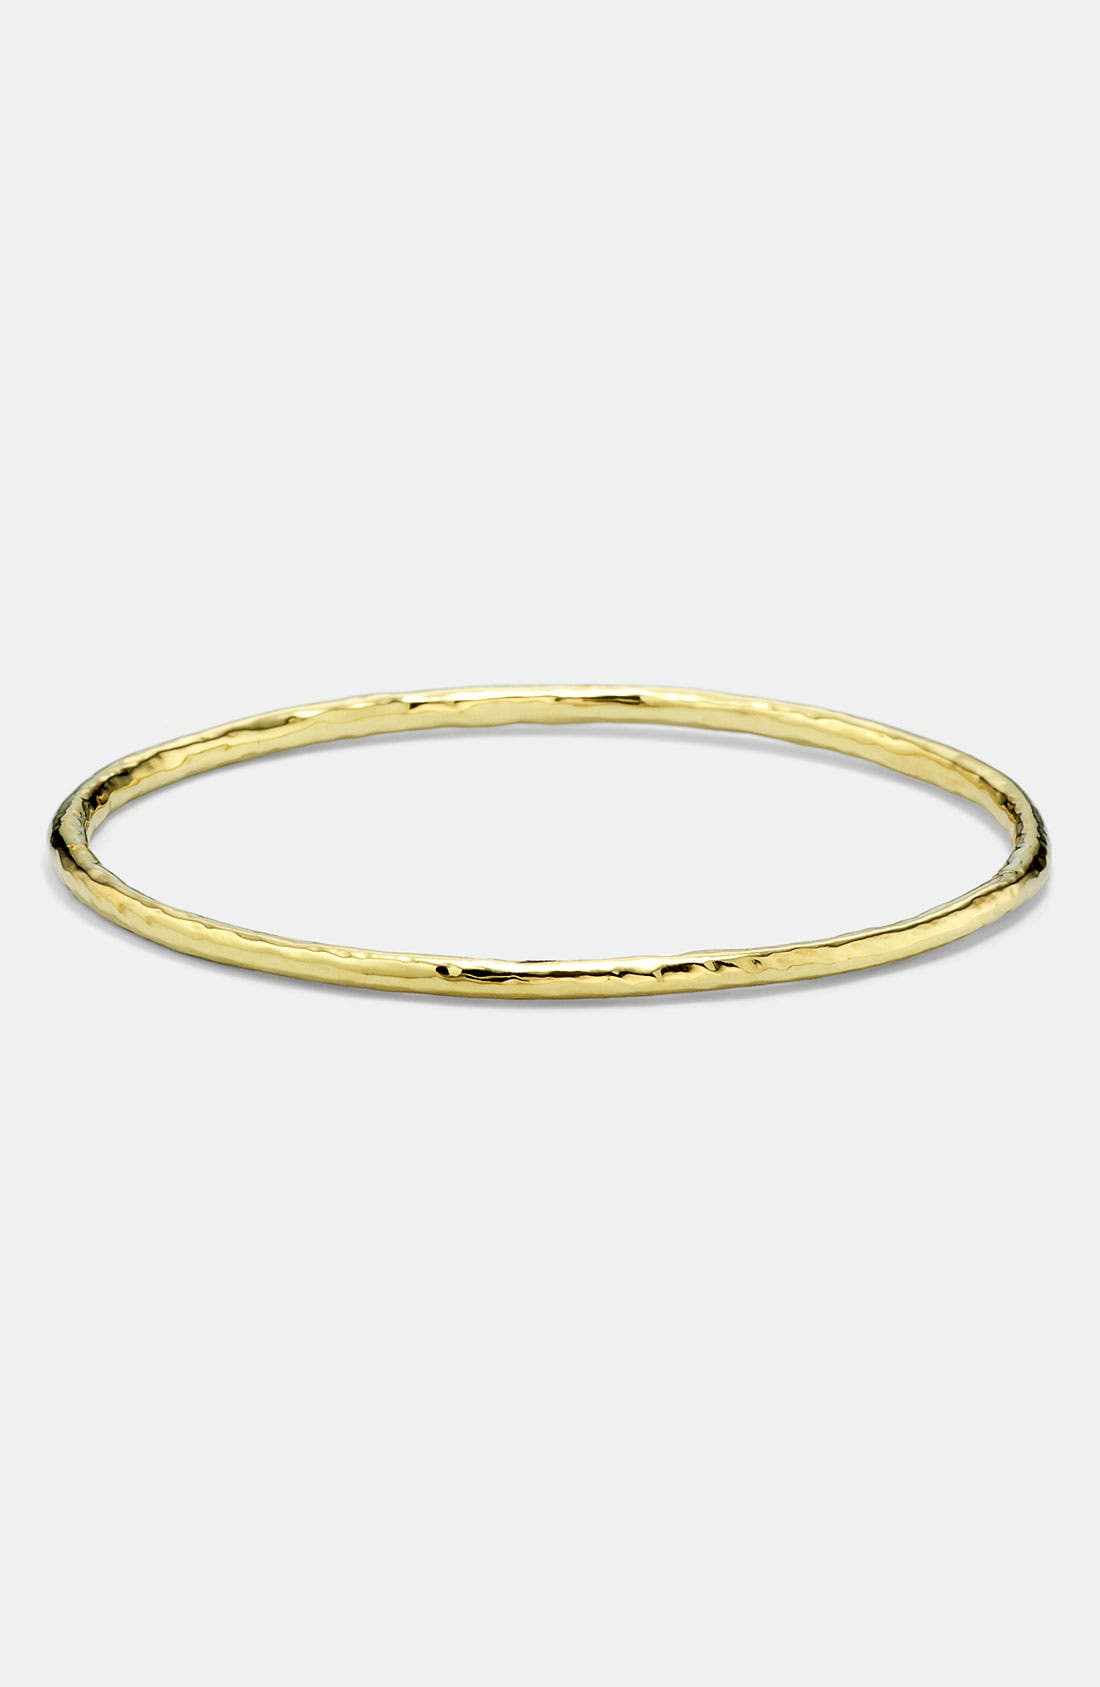 'Glamazon' 18k Gold Bangle,                             Main thumbnail 1, color,                             YELLOW GOLD